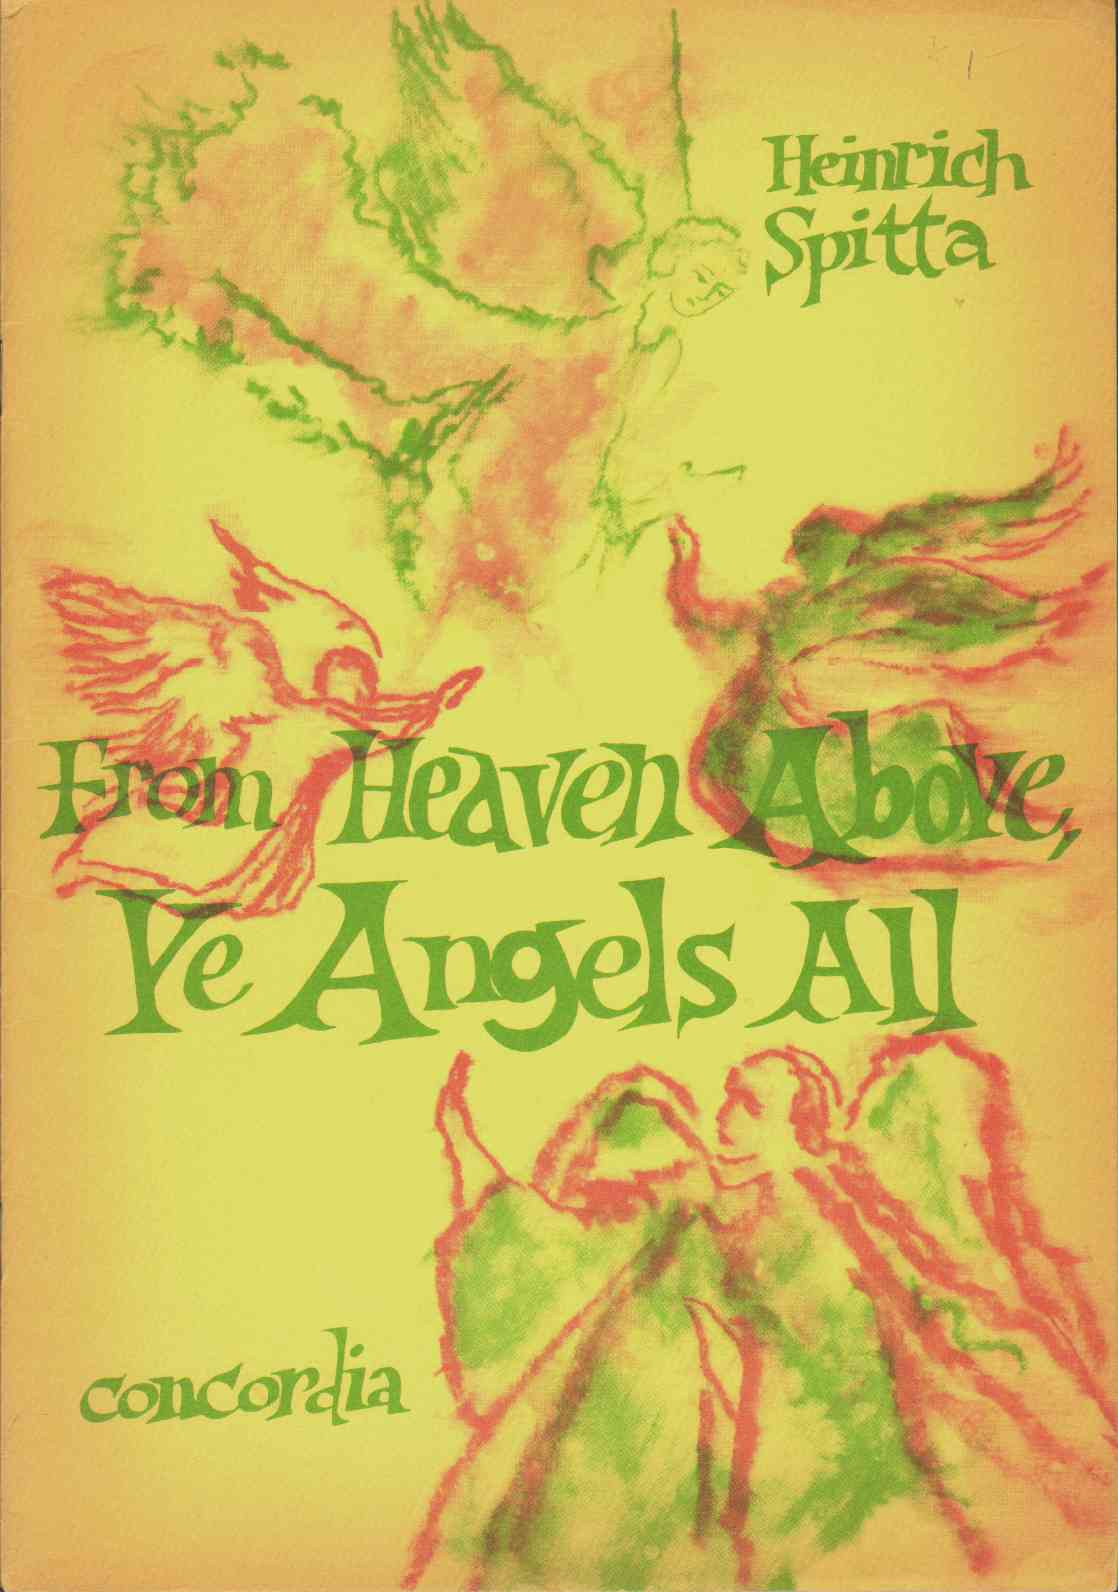 Image for FROM HEAVEN ABOVE, YE ANGELS ALL A Christmas Cantata. for Treble Voices, Male Voices or Mixed Voices, Strings or Woodwinds and Continuo